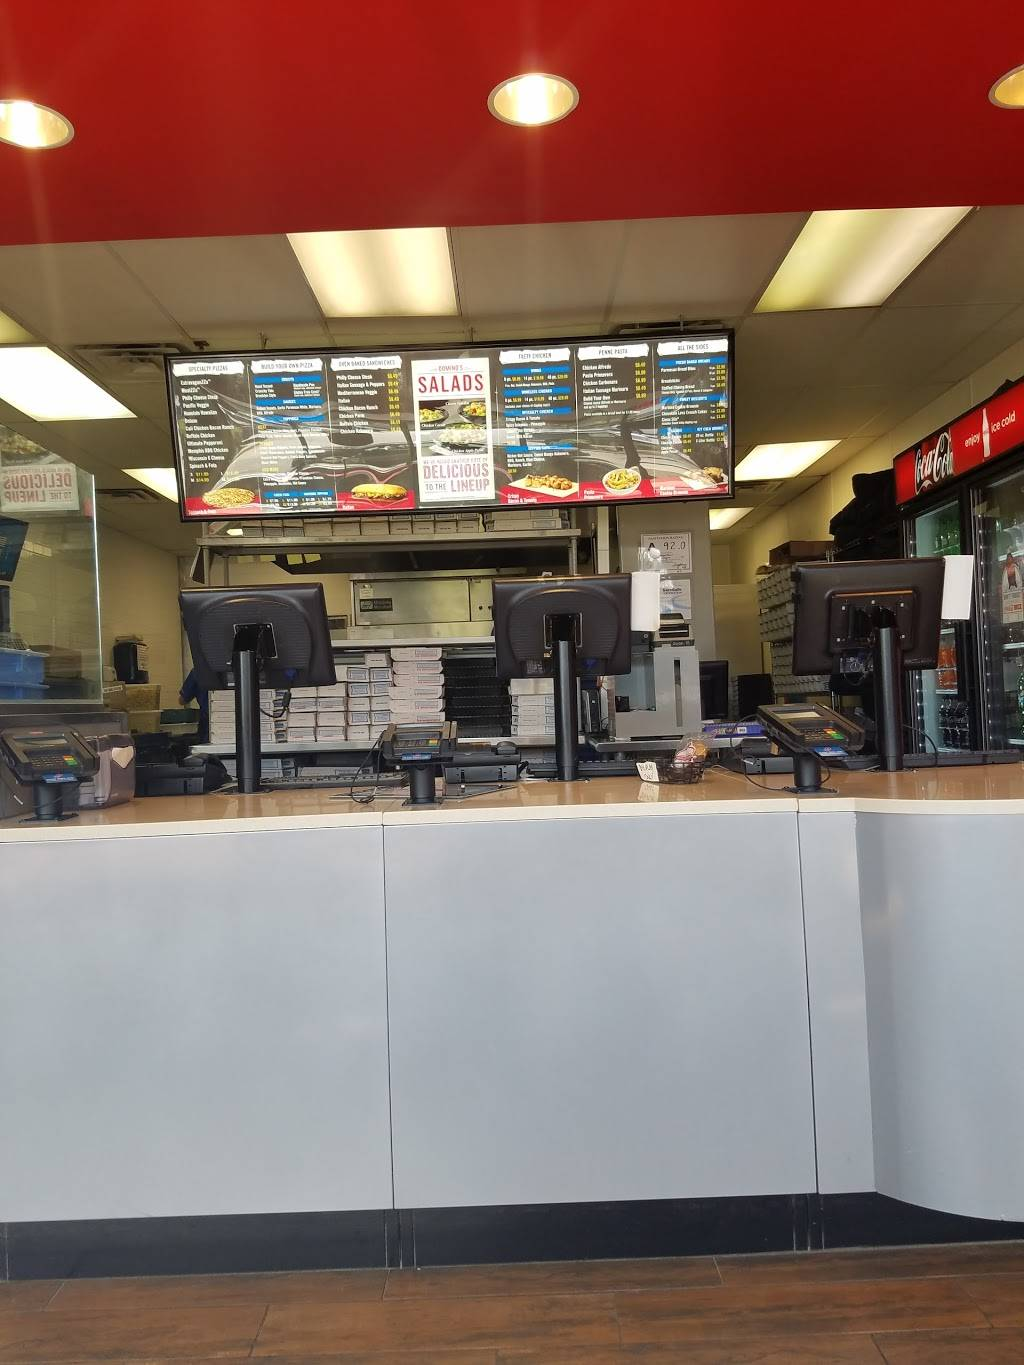 Dominos Pizza - meal delivery  | Photo 9 of 10 | Address: 4237 Louisburg Rd, Raleigh, NC 27604, USA | Phone: (919) 872-7222